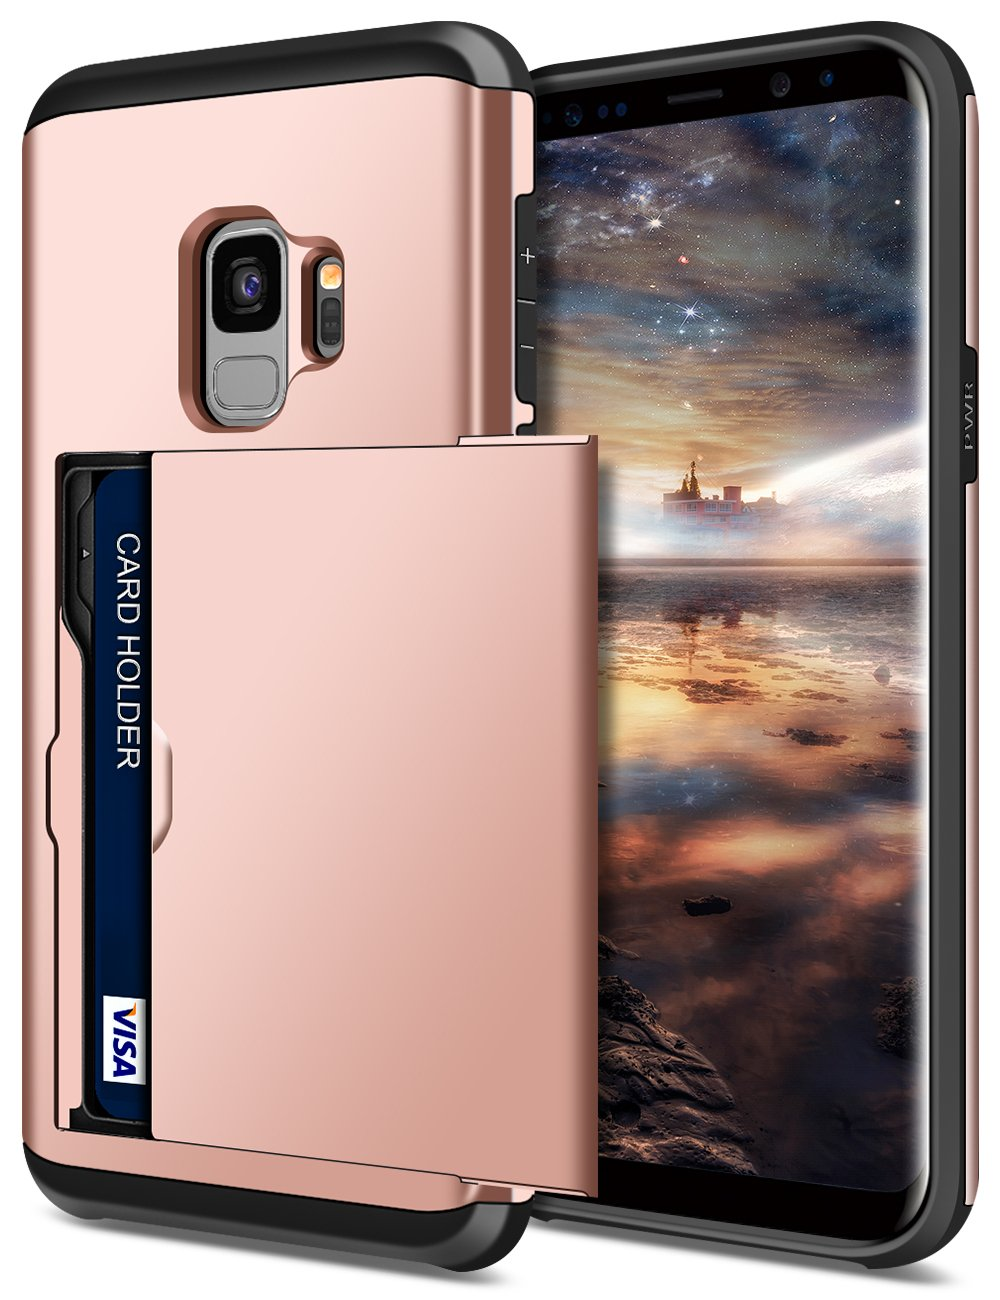 SAMONPOW Wallet Cover for Galaxy S9 Case Hybrid S9 Wallet Case Card Holder Shell Heavy Duty Protection Shockproof Anti Scratch Soft Rubber Bumper Cover Case for Samsung Galaxy S9 Rose Gold